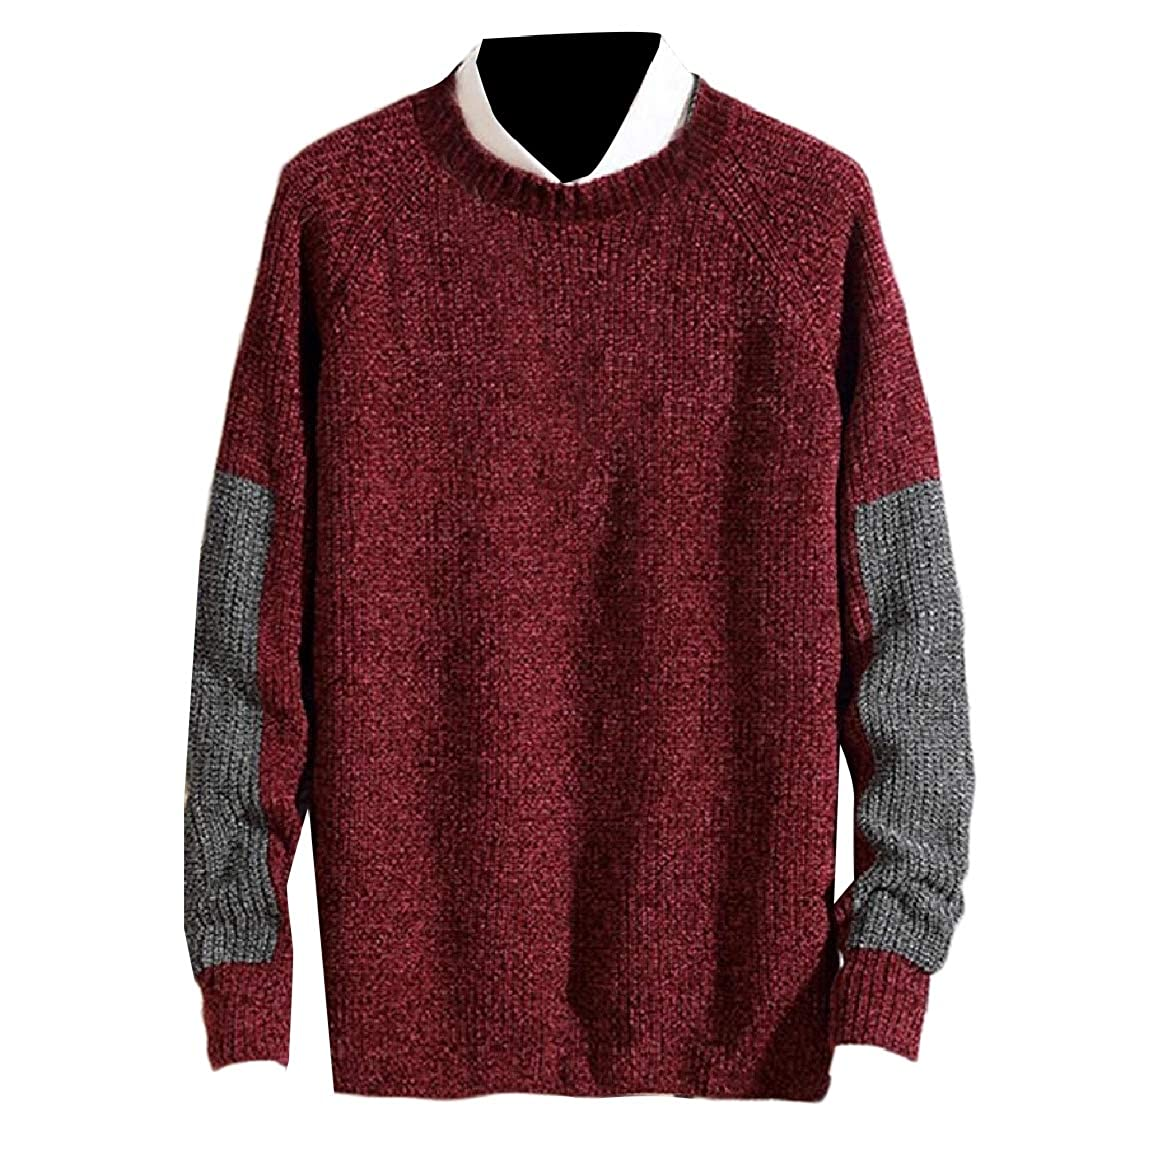 YUNY Men Comfort Knitted Relaxed Fit Autumn Contrast Pullover Sweater Wine Red 2XL